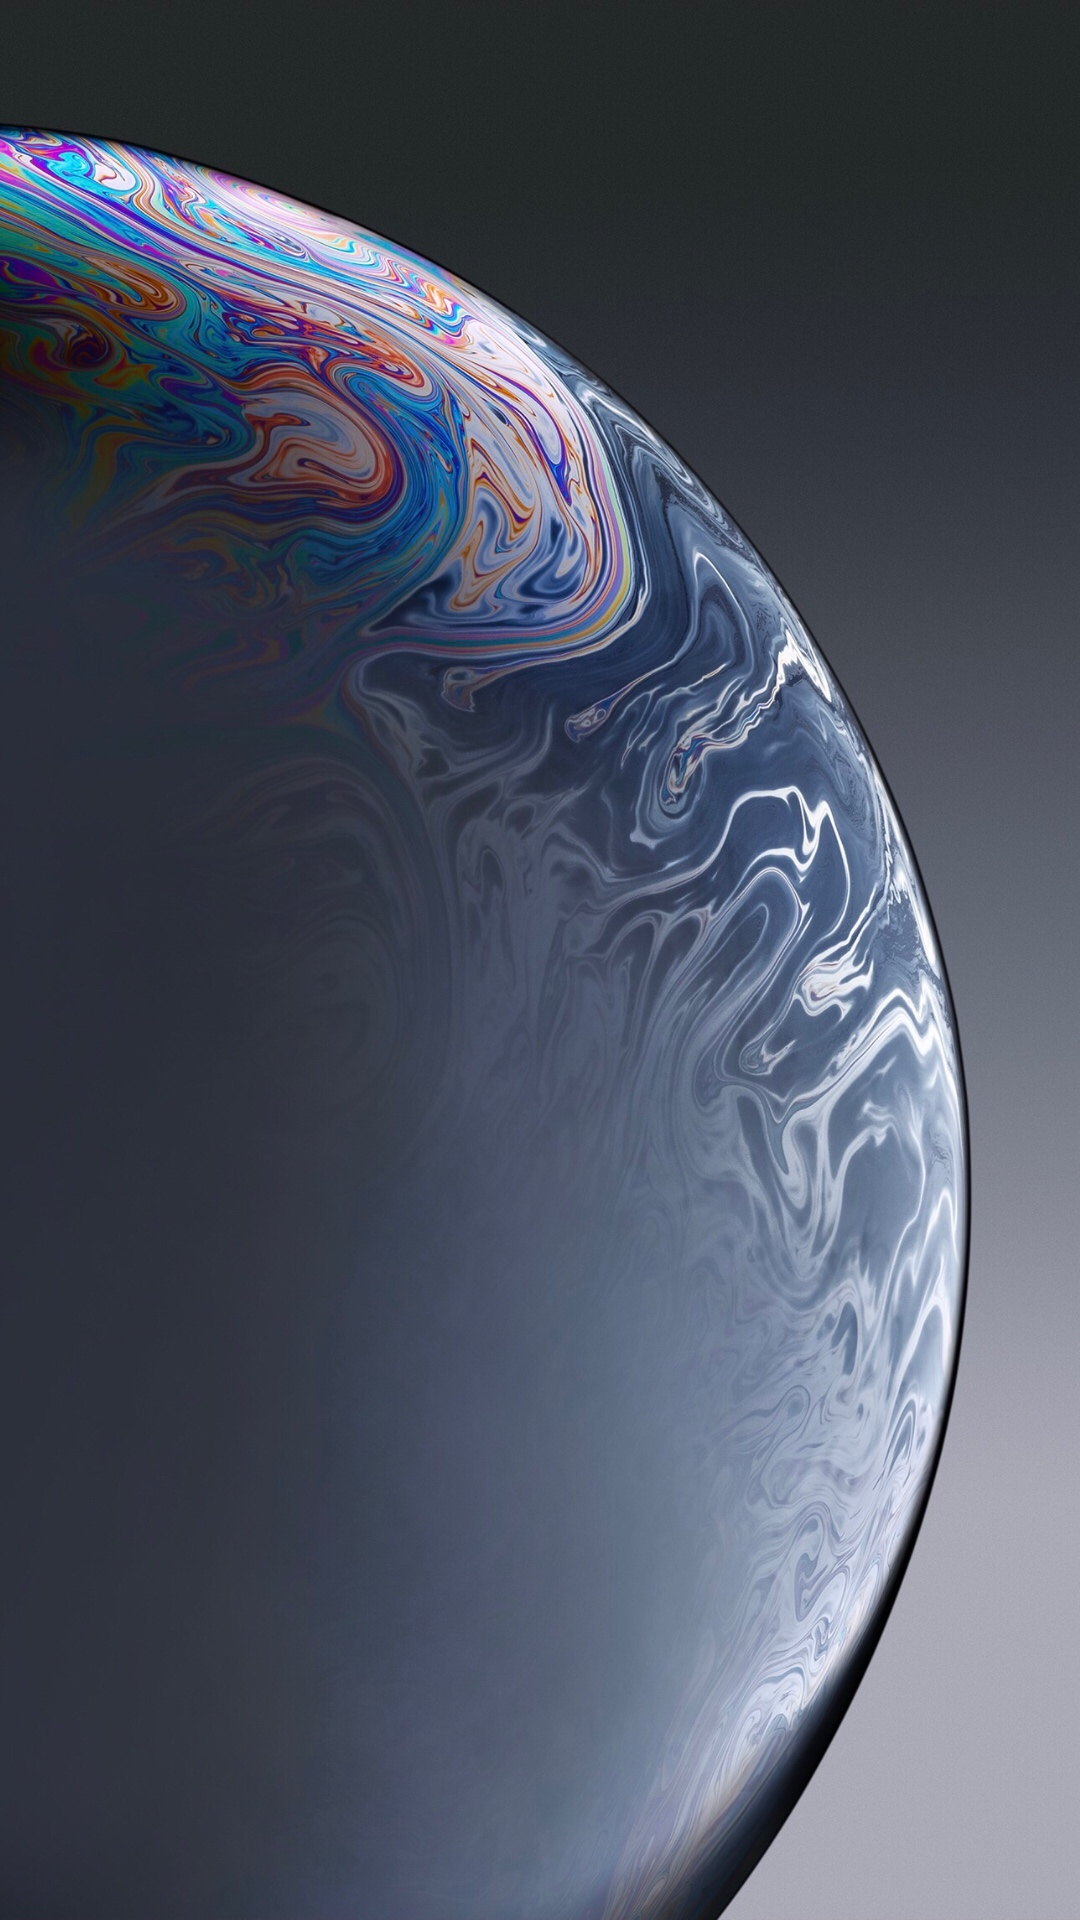 wallpaper iphone xs 2018